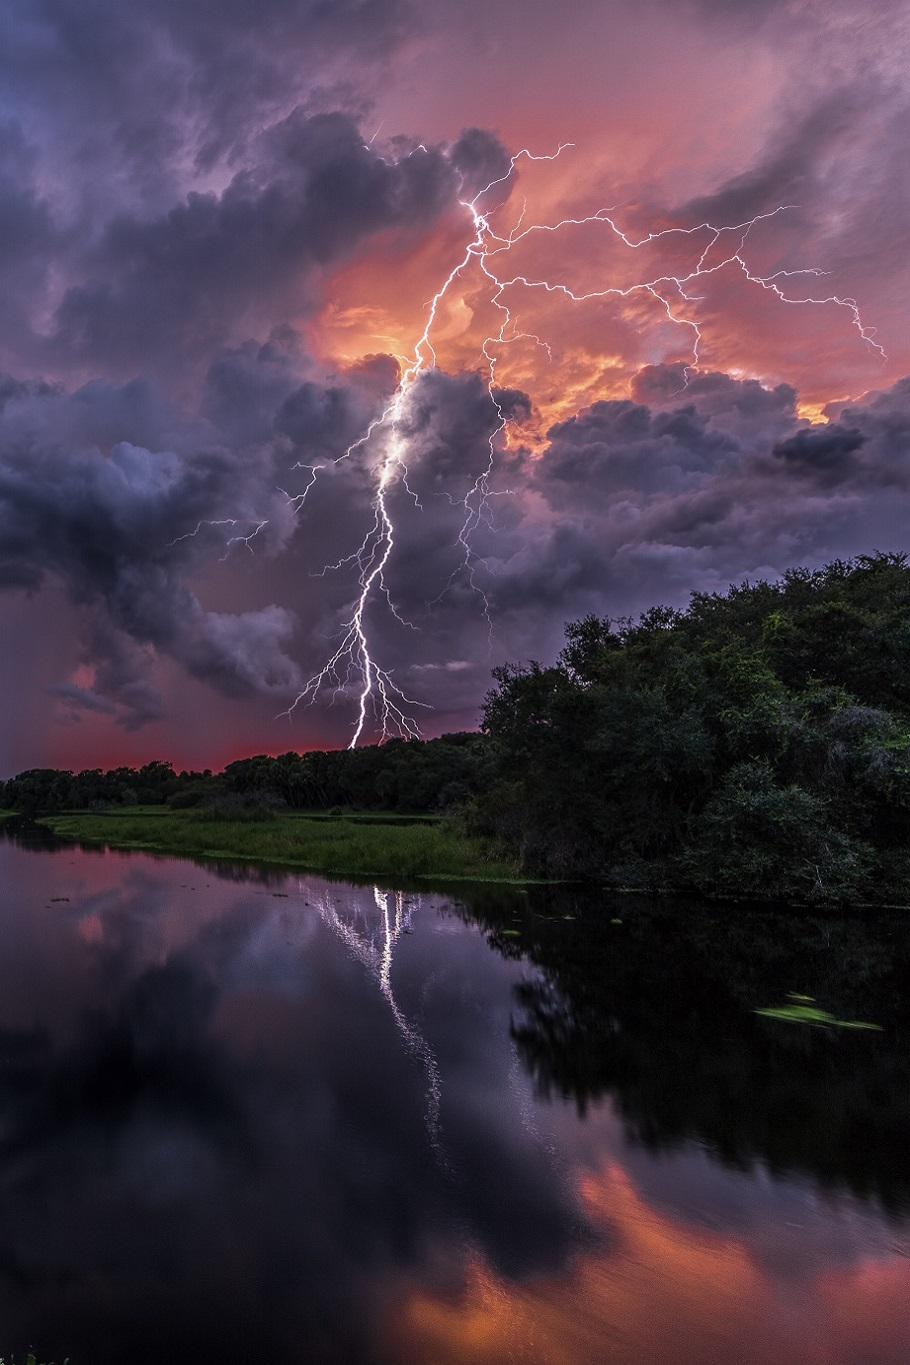 lightning and beautiful colors from the setting sun